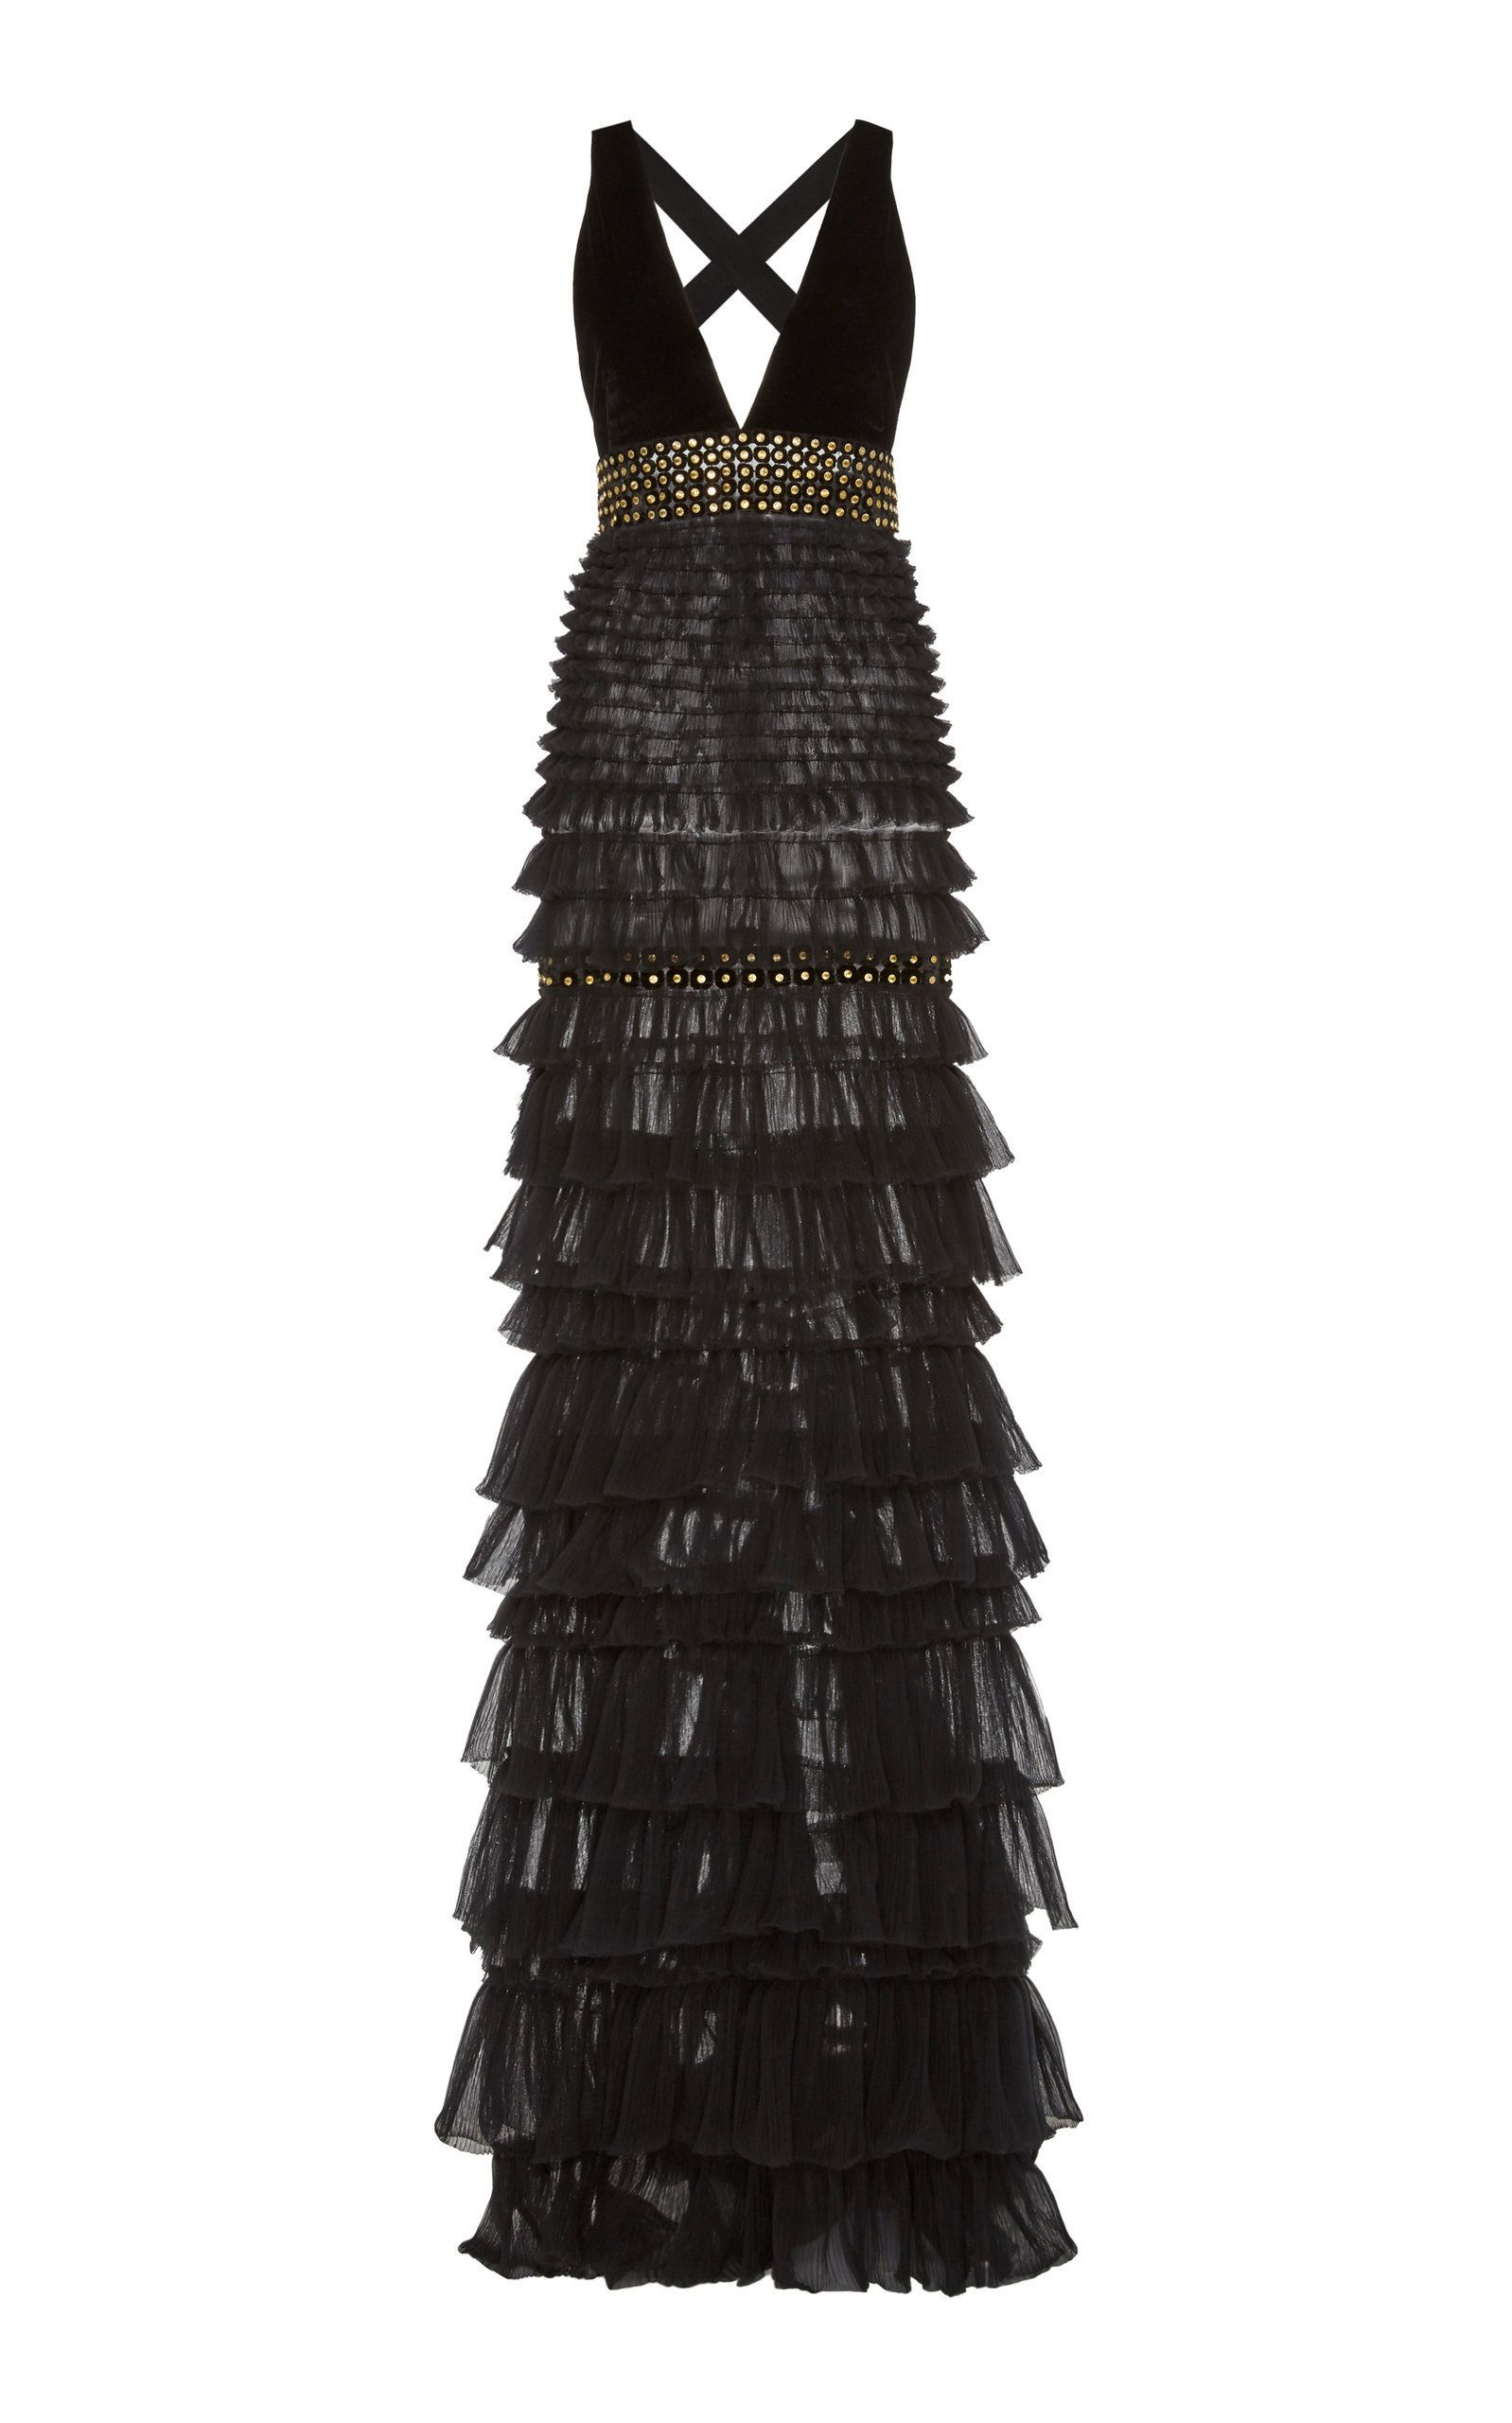 68a9d4e1ce9 Embroidered Tiered Tulle V-Neck Gown by J. MENDEL for Preorder on Moda  Operandi